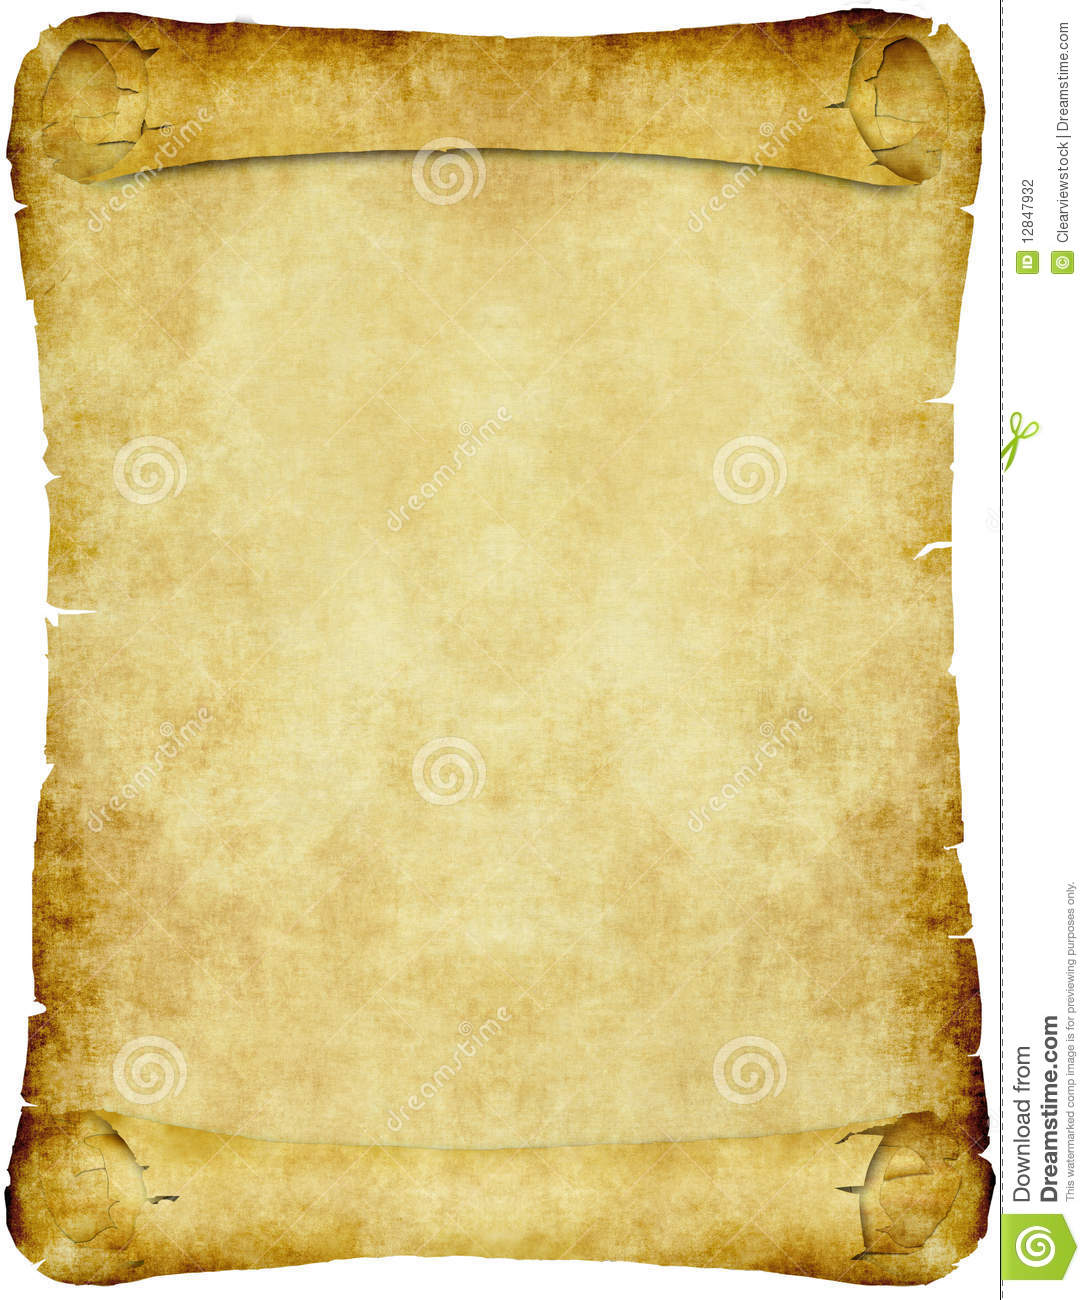 Antique Scrollimgs: Vintage Parchment Paper Scroll Stock Vector